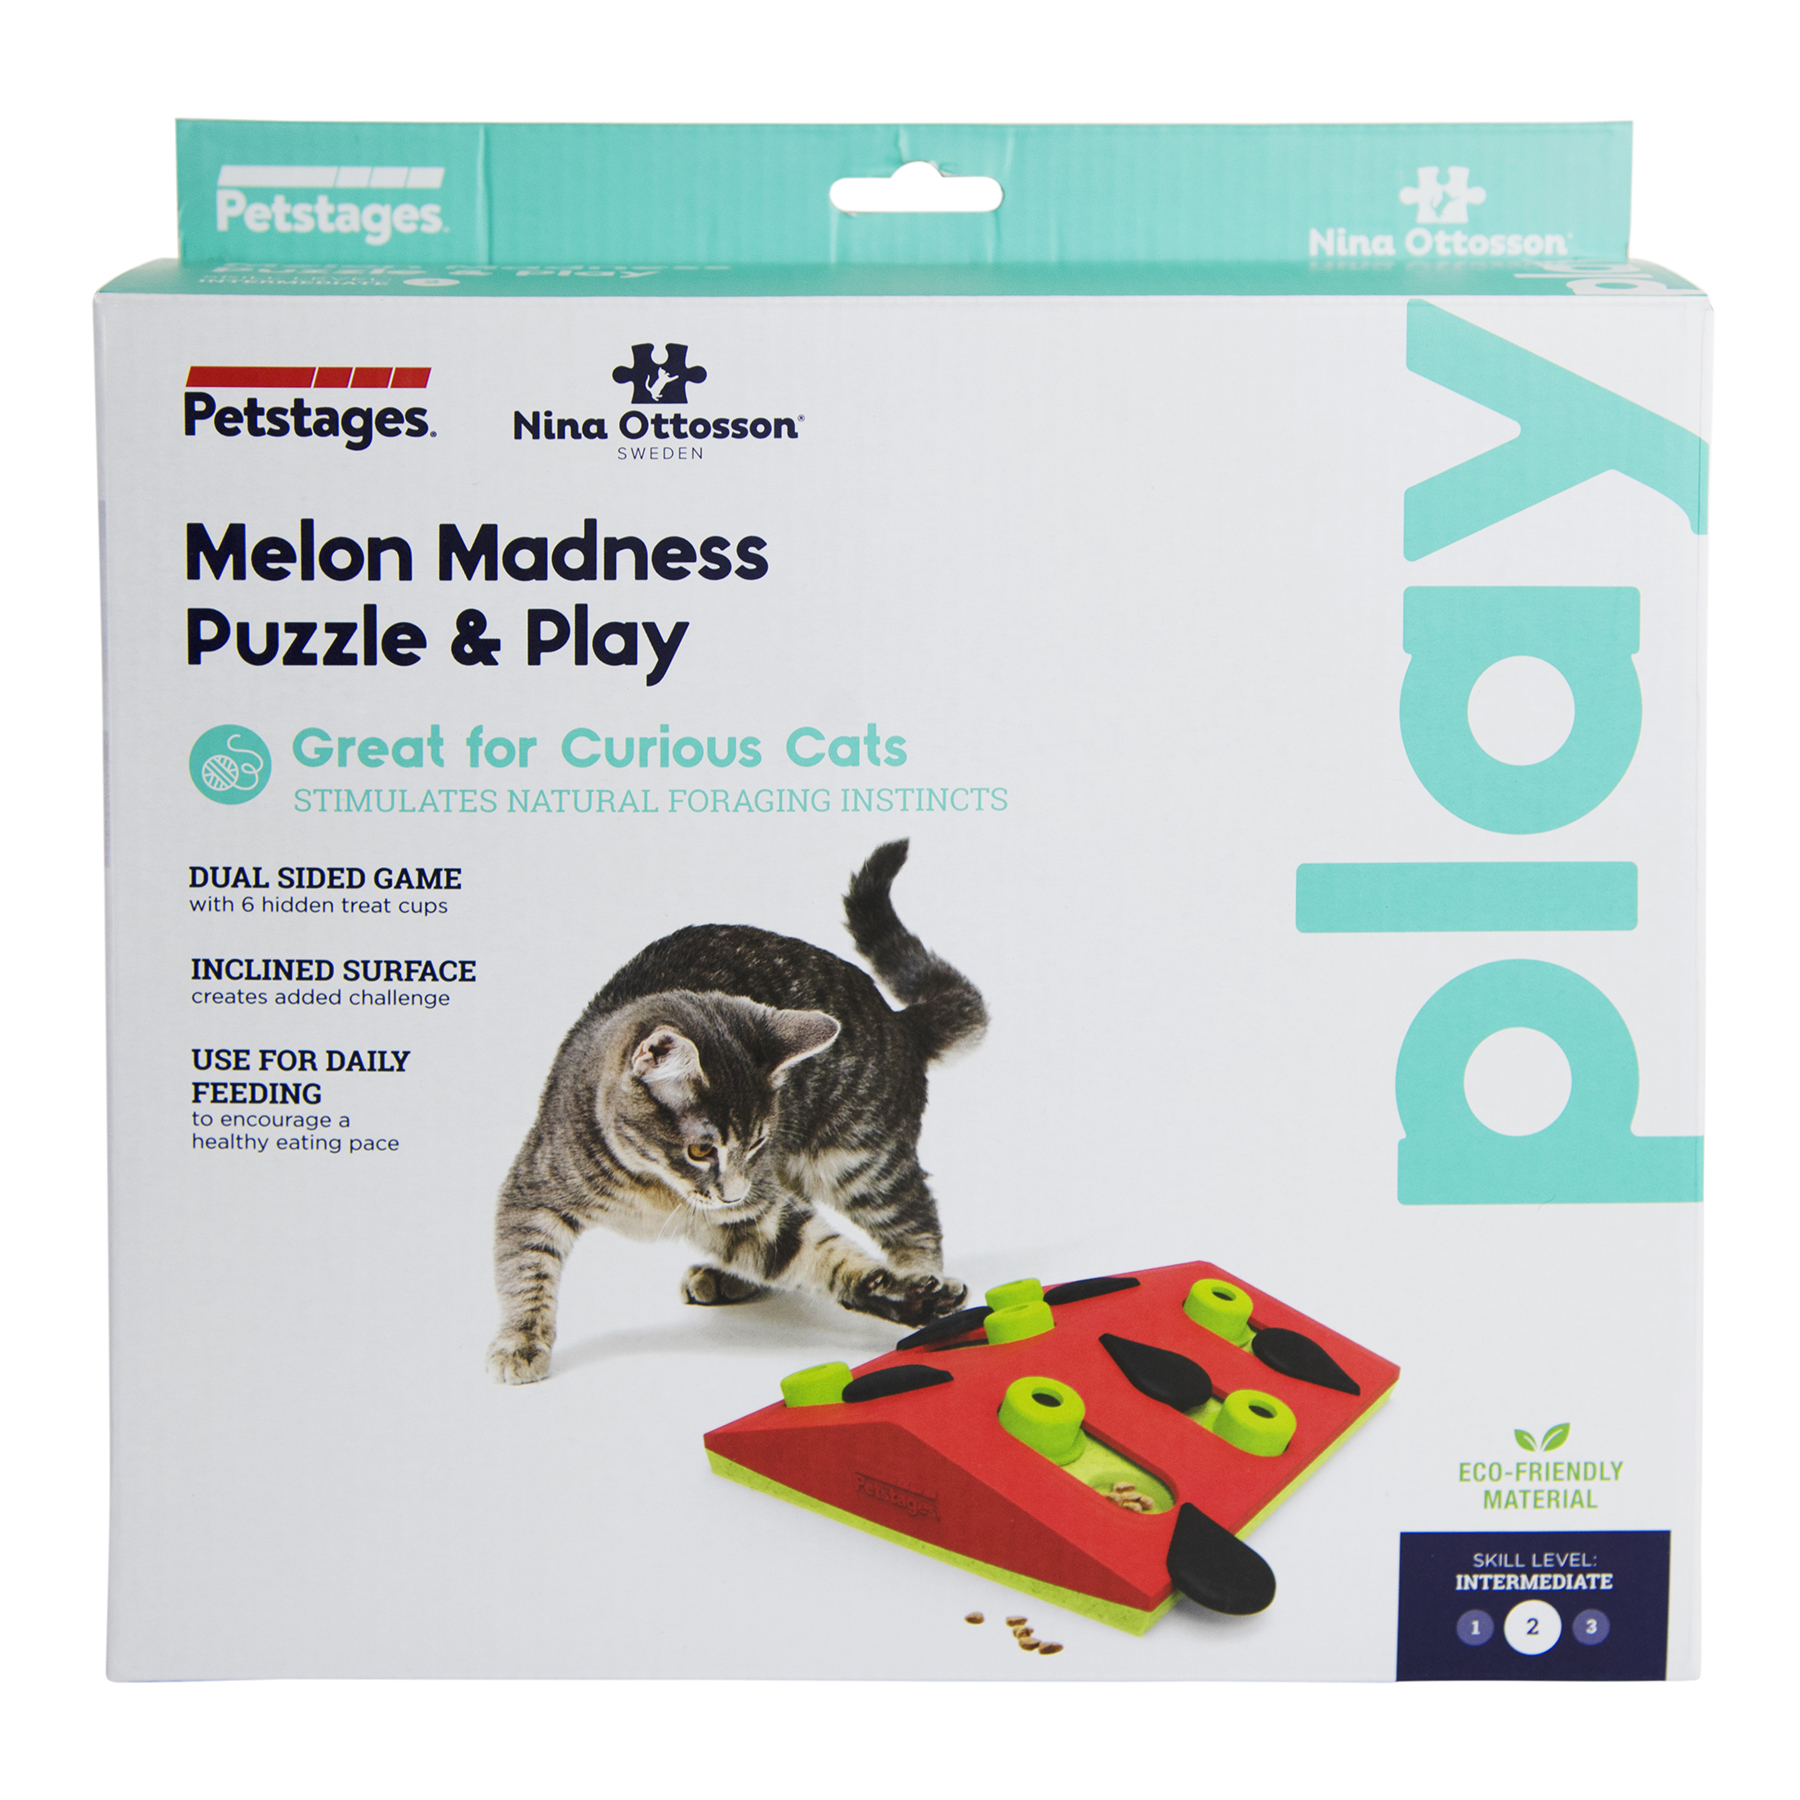 69583 Petstages NinaOttosson PuzzleAndPlay MelonMadness Pnk Main2